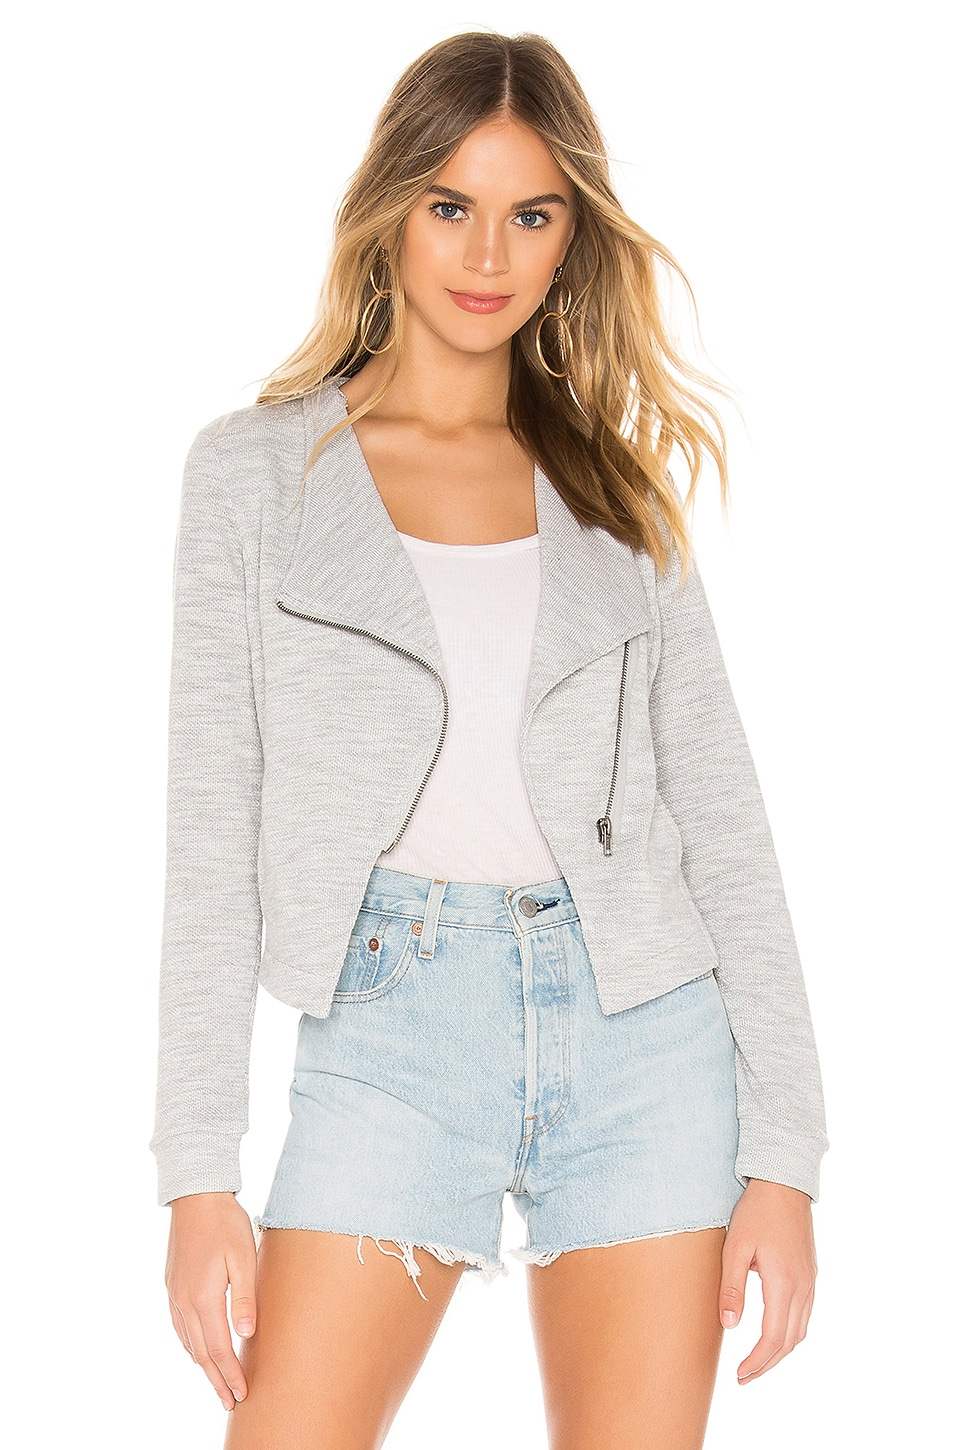 BB Dakota Knits Electric Jacket in Light Heather Grey